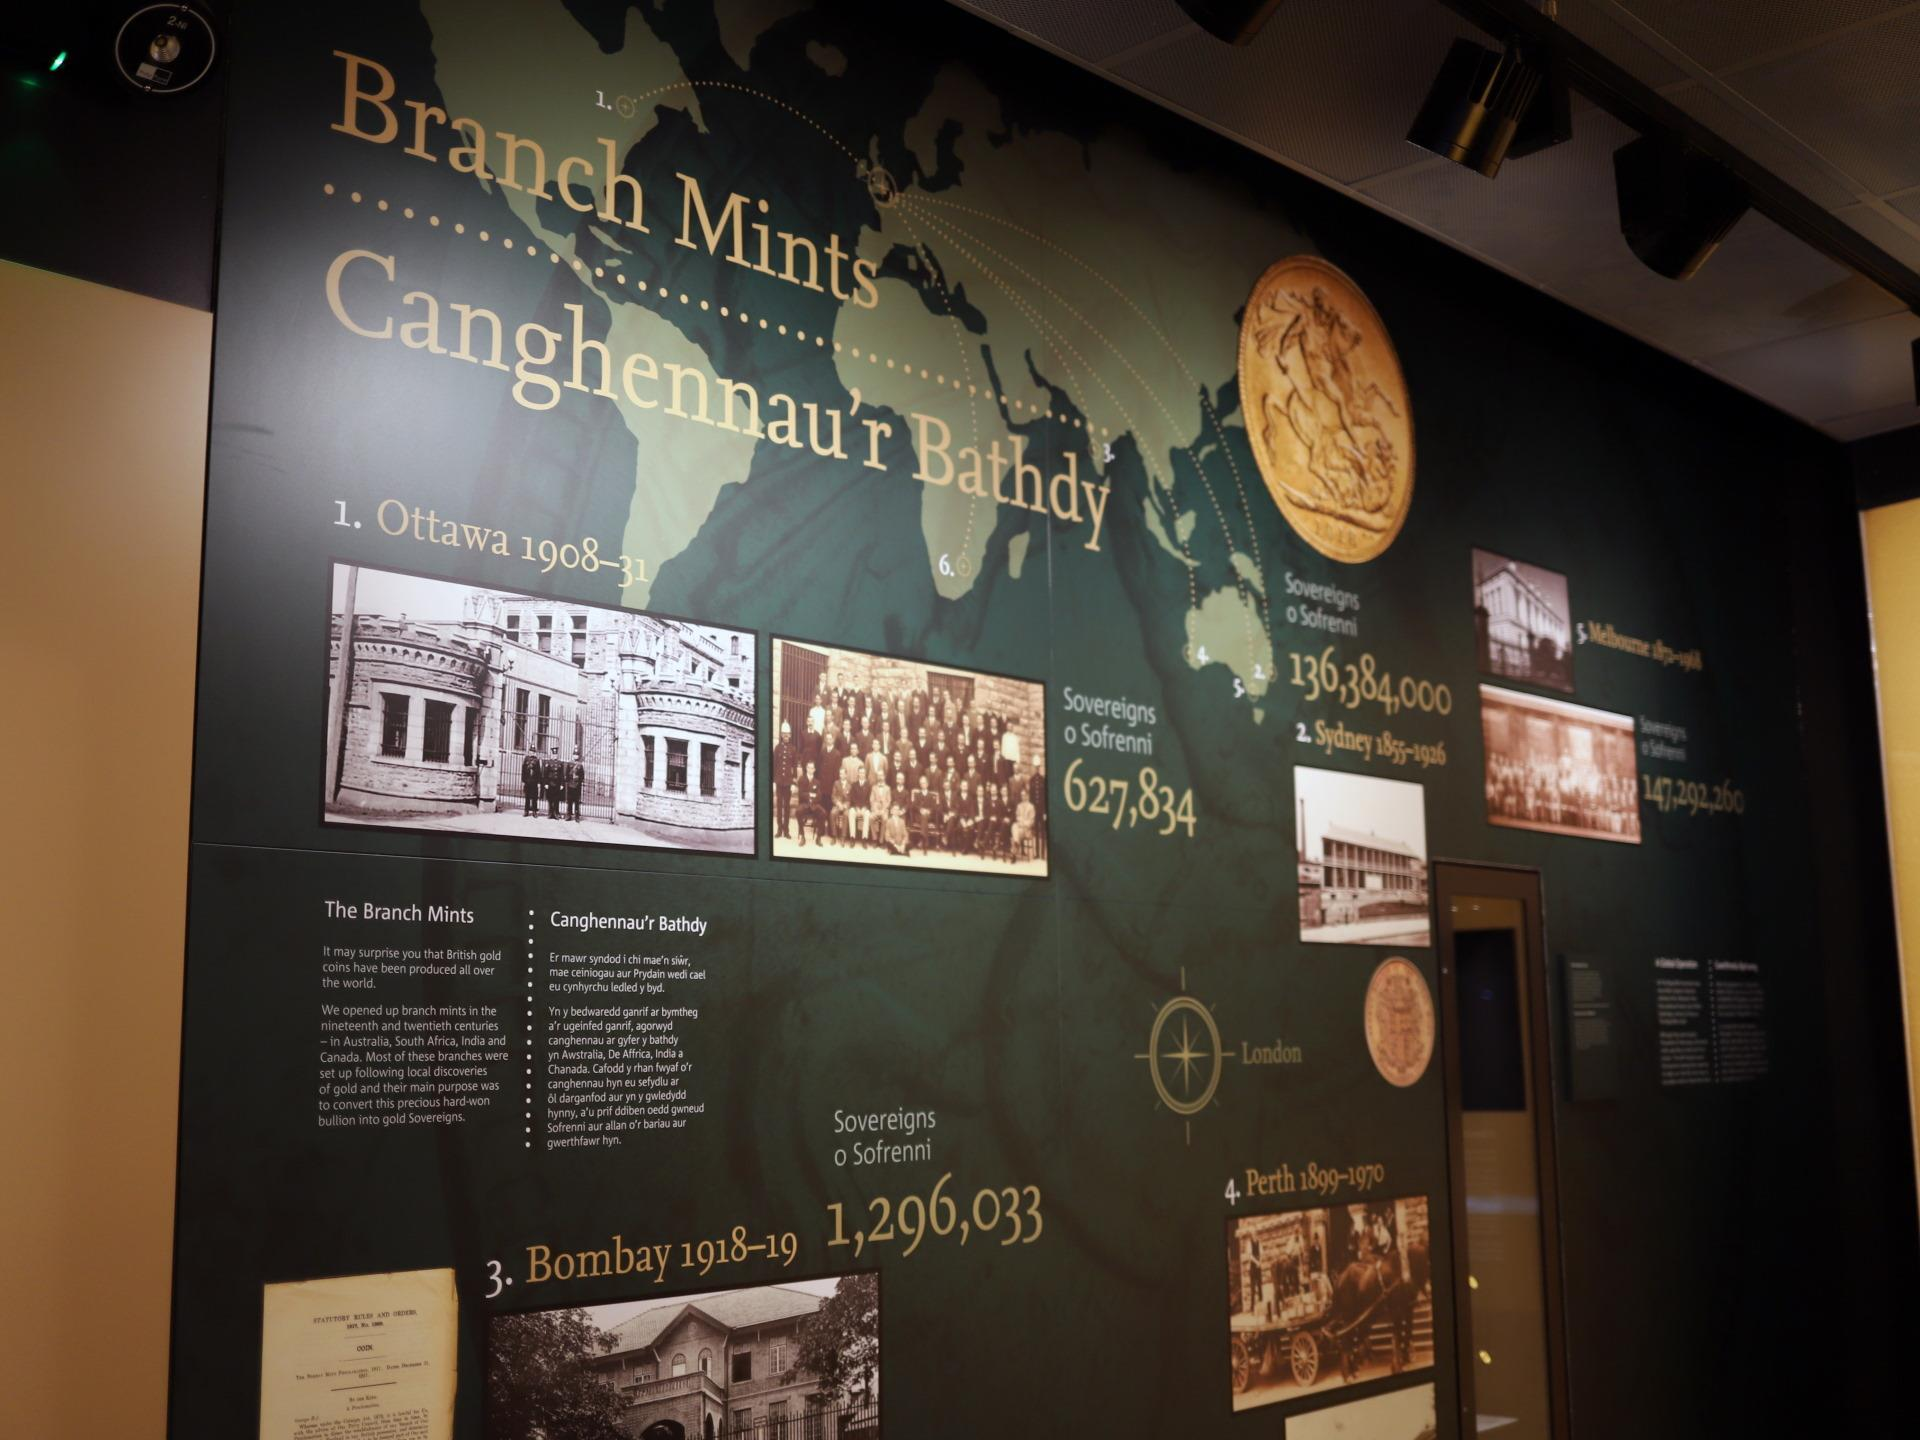 The Royal Mint Exhibition